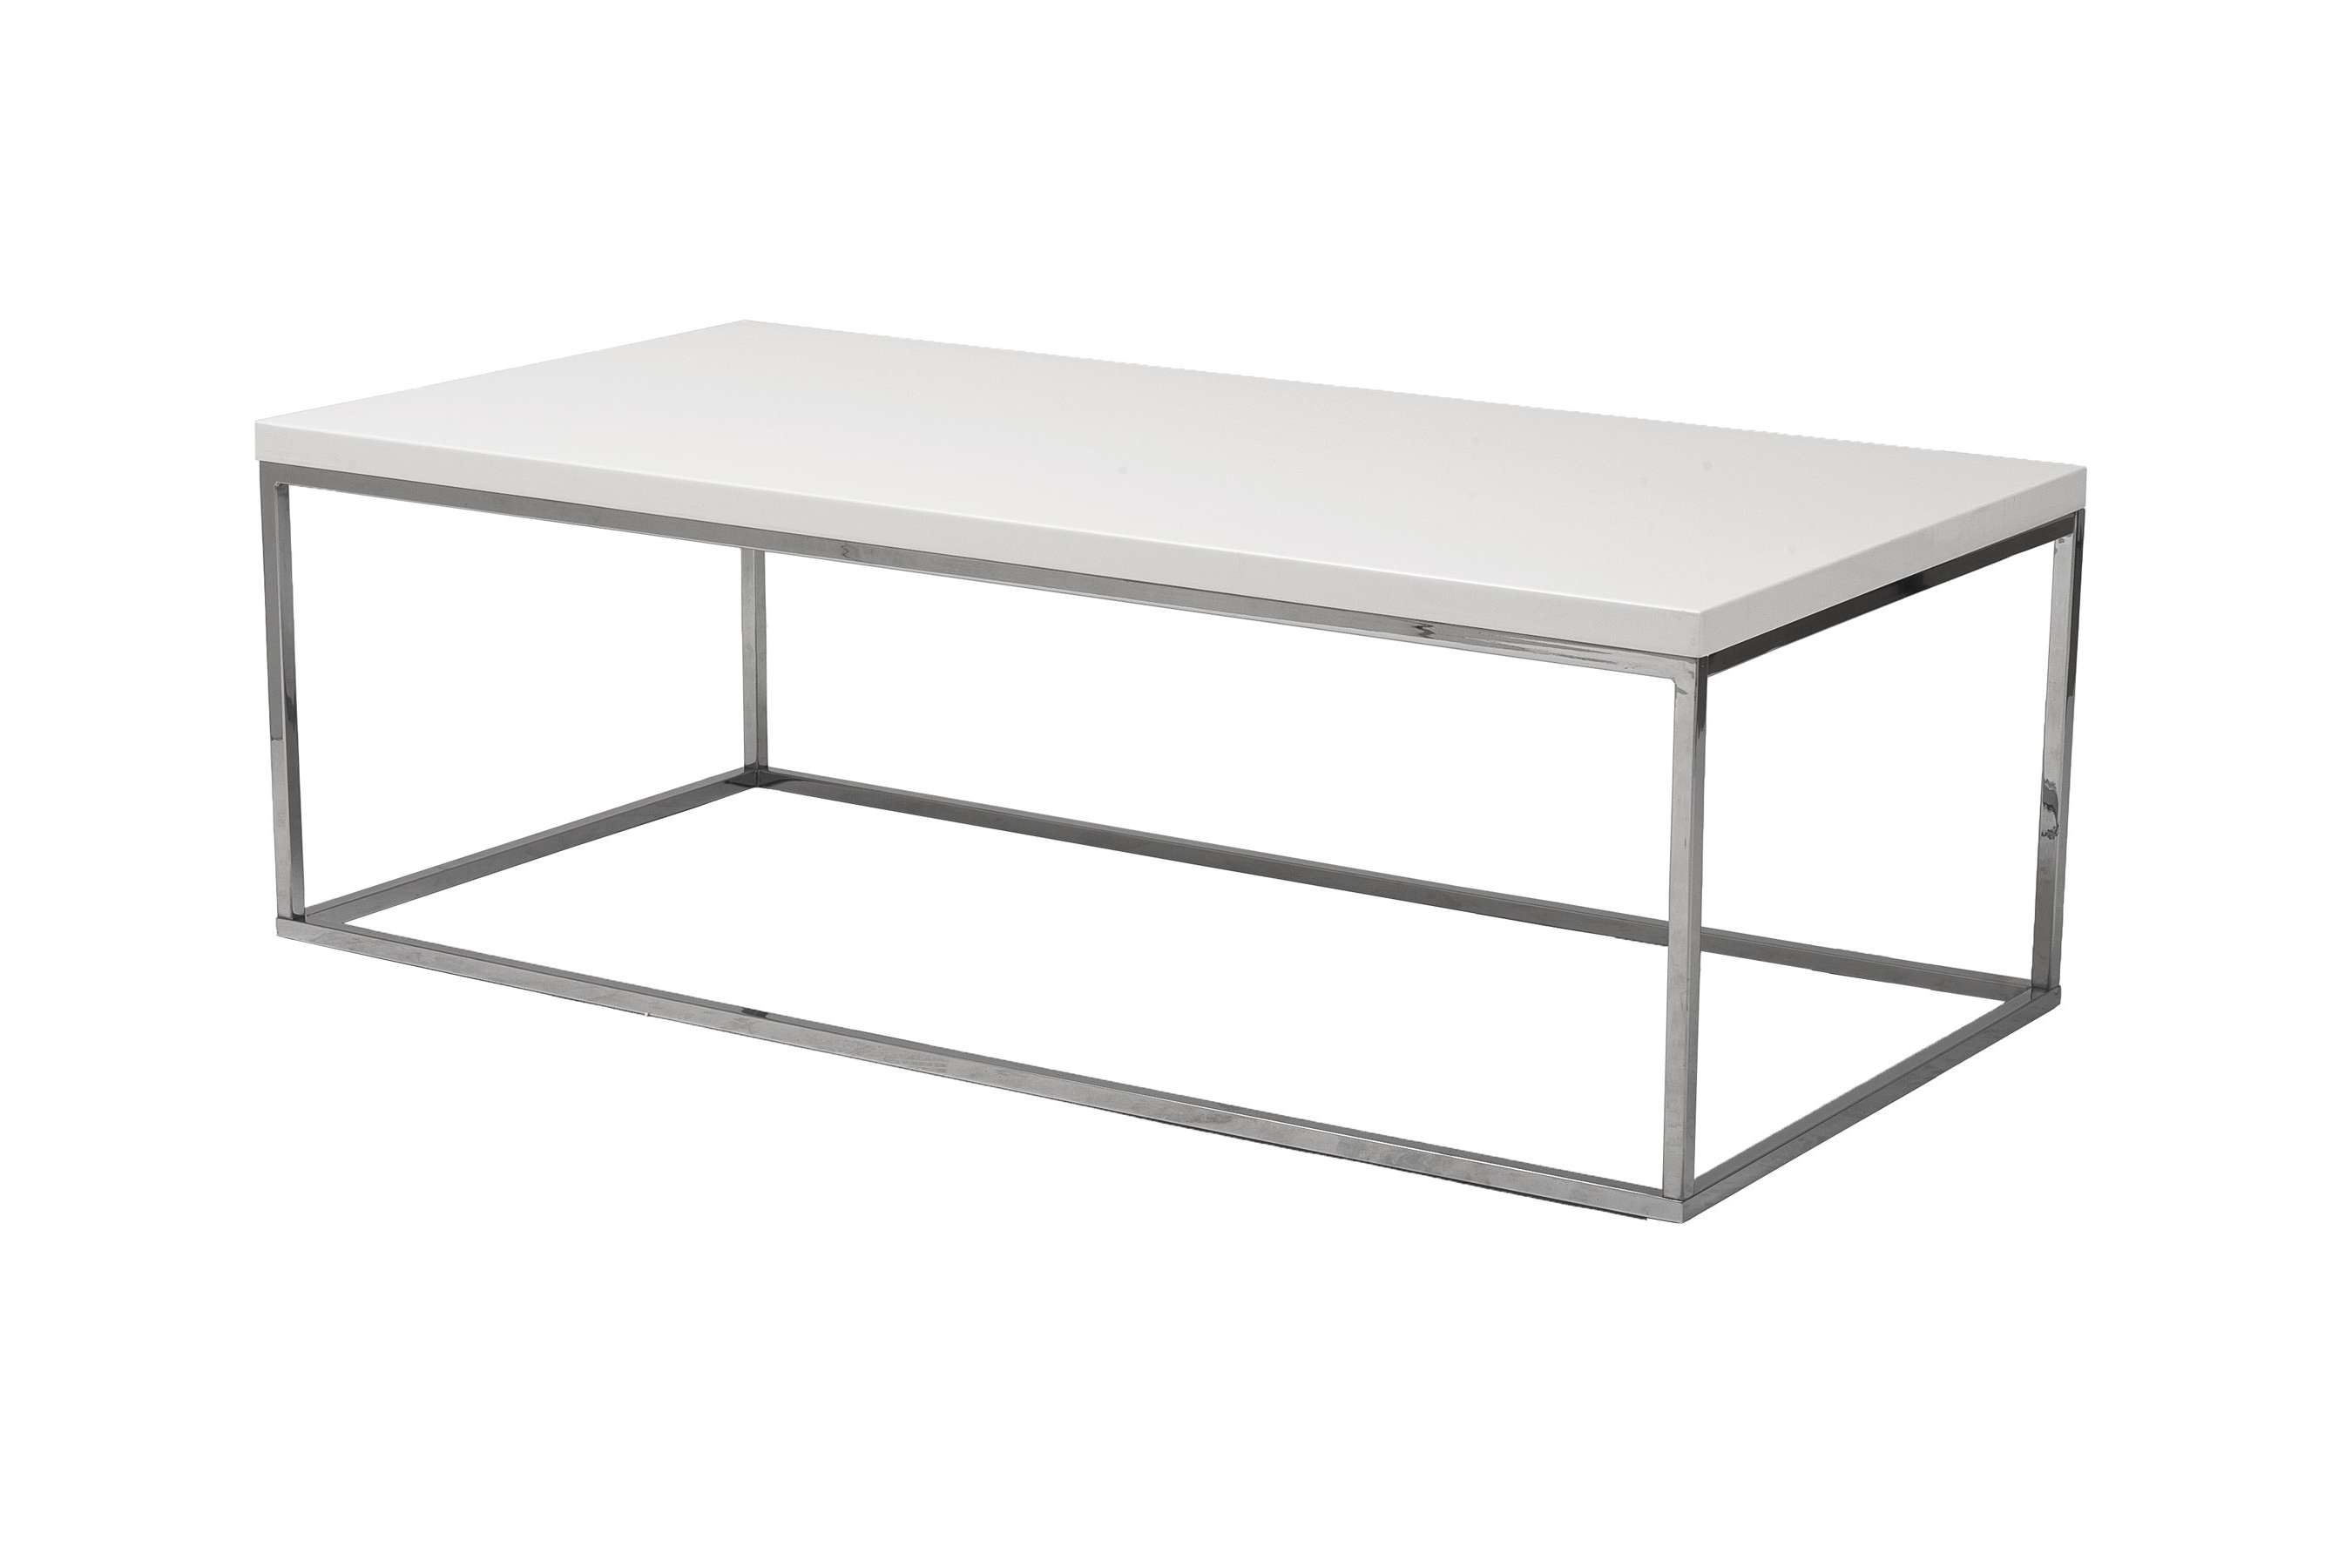 Coffee Table: Rectangular Coffee Table Simple Living Room For Well Known Rectangular Coffee Tables (View 3 of 20)